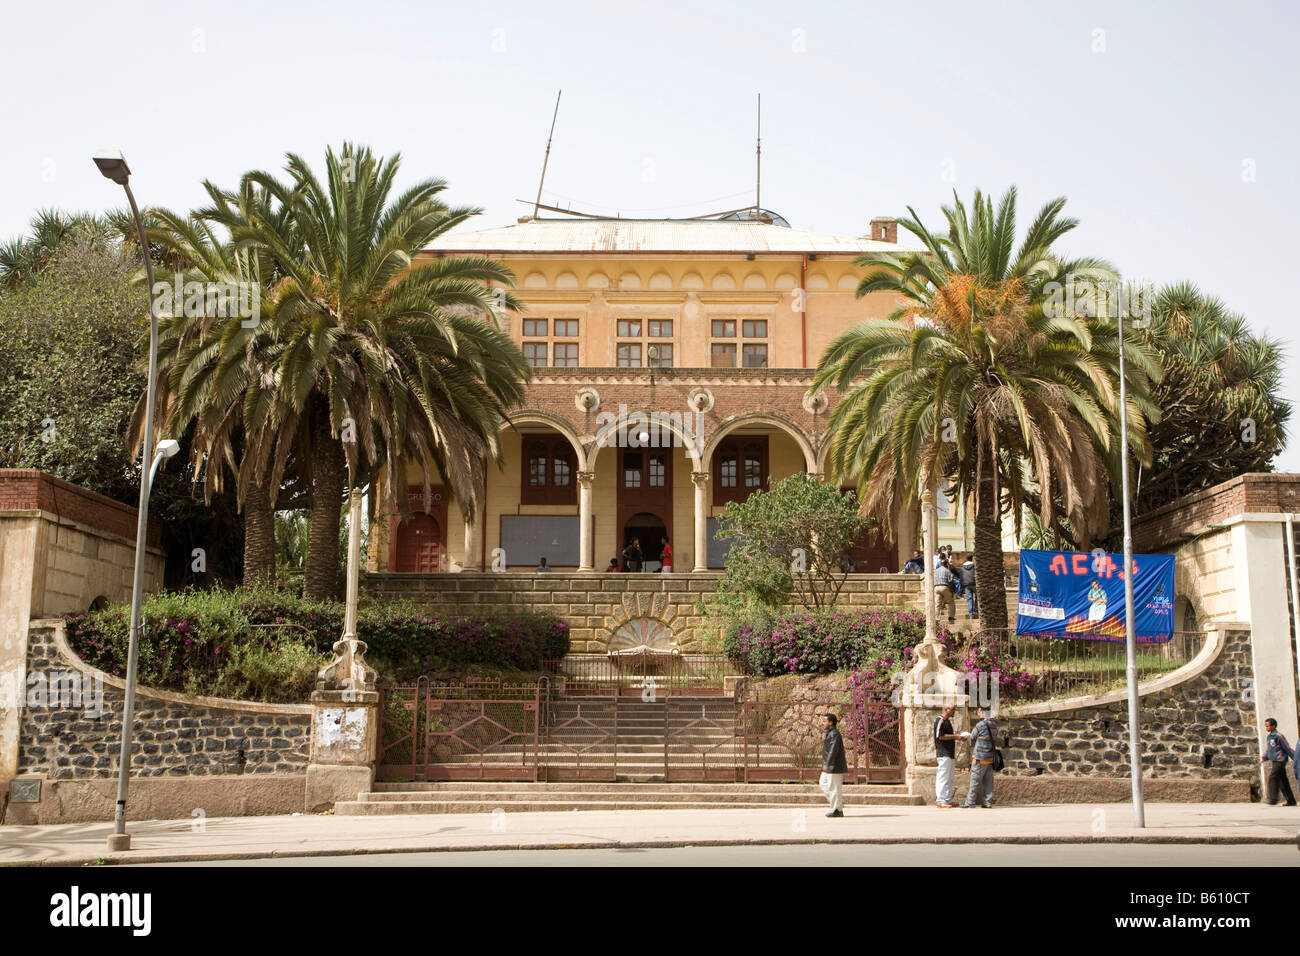 Theatre on the Harnet Avenue, built 1919/20 by the Italien, Asmara, Eritrea, Horn of Africa, East Africa - Stock Image